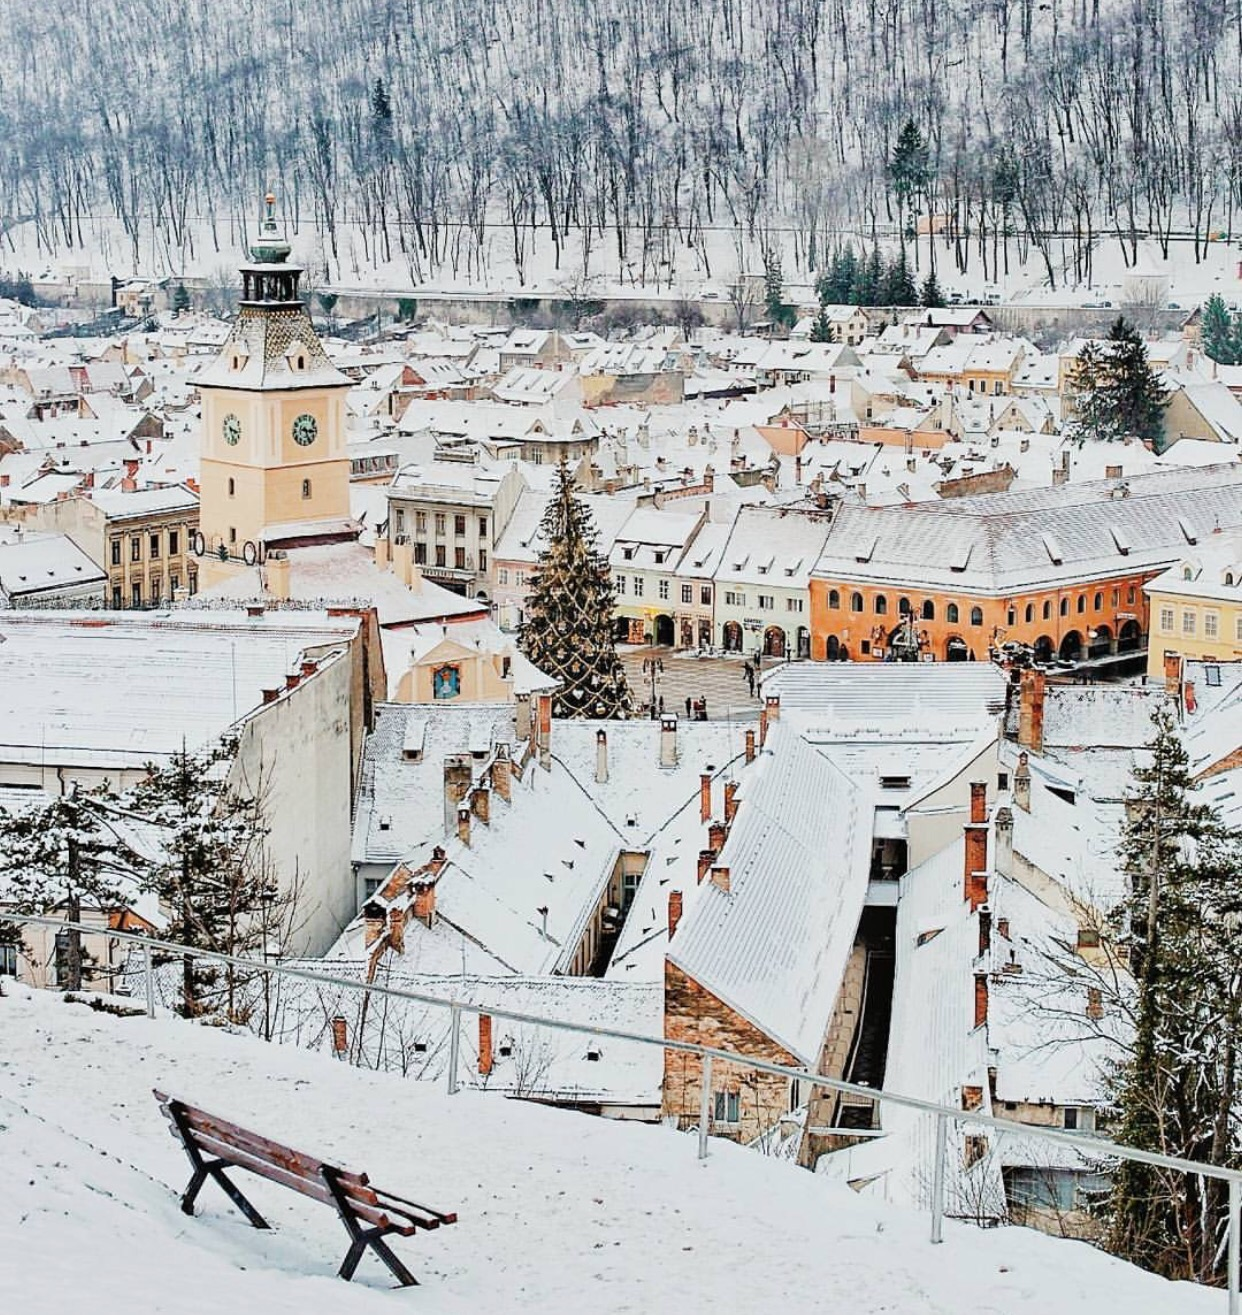 Imagine yourself here on this bench in Brasov. Sipping hot chocolate, listening to the snow fall...